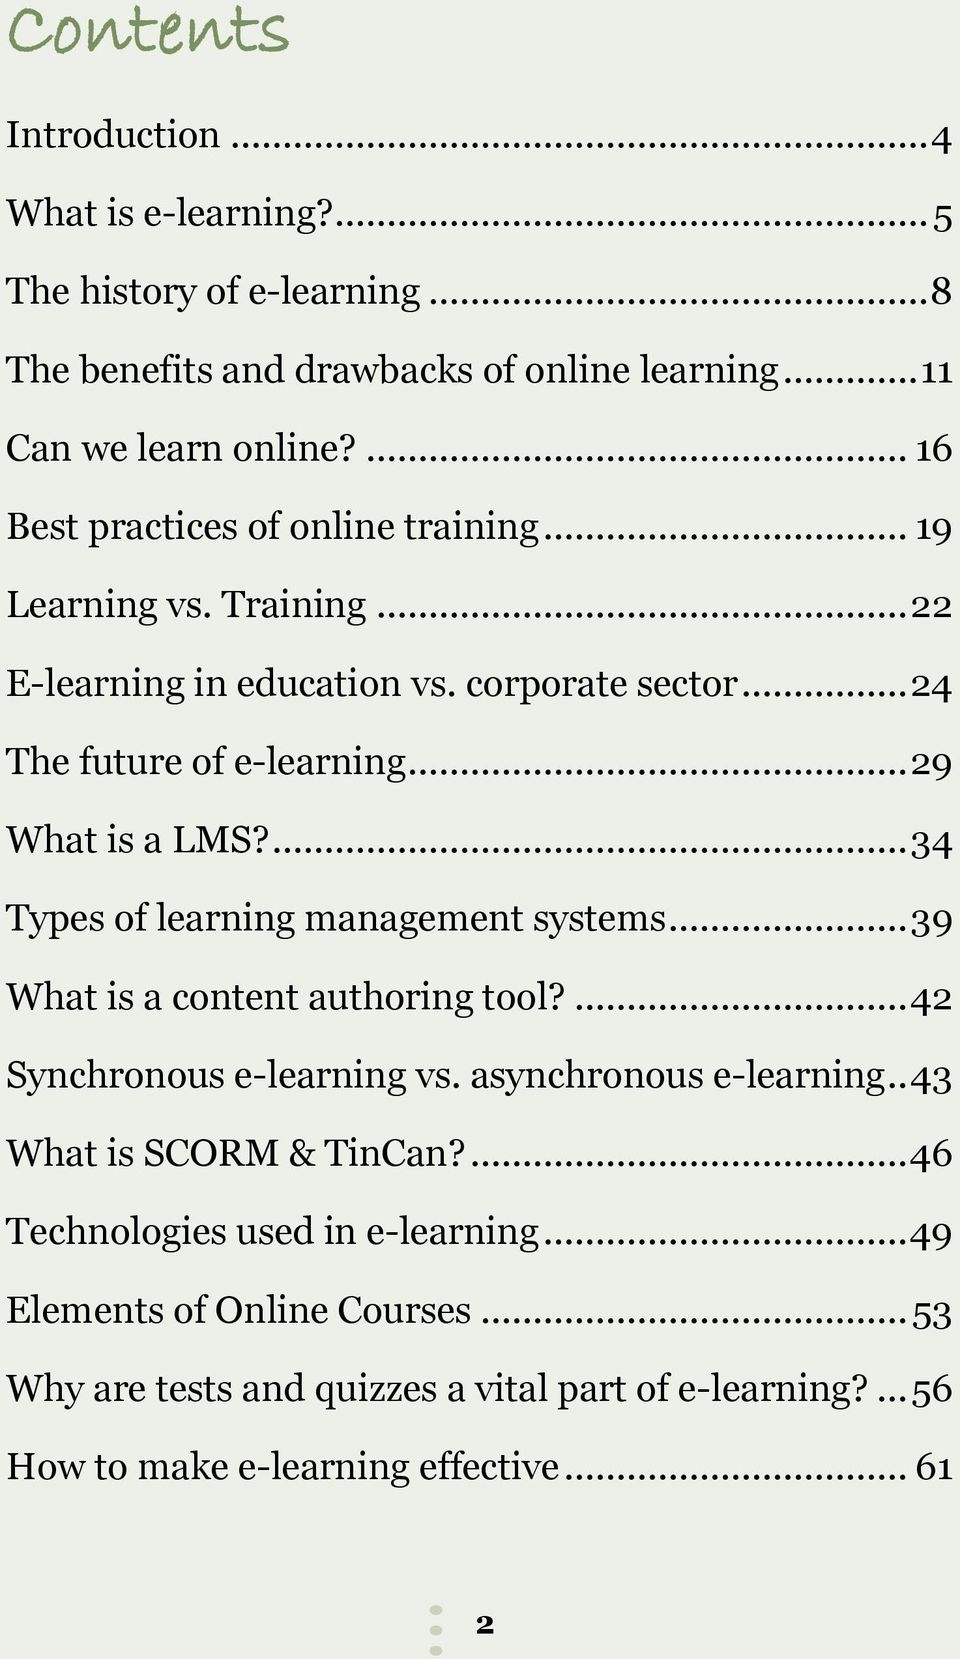 ... 34 Types of learning management systems... 39 What is a content authoring tool?... 42 Synchronous e-learning vs. asynchronous e-learning.. 43 What is SCORM & TinCan?